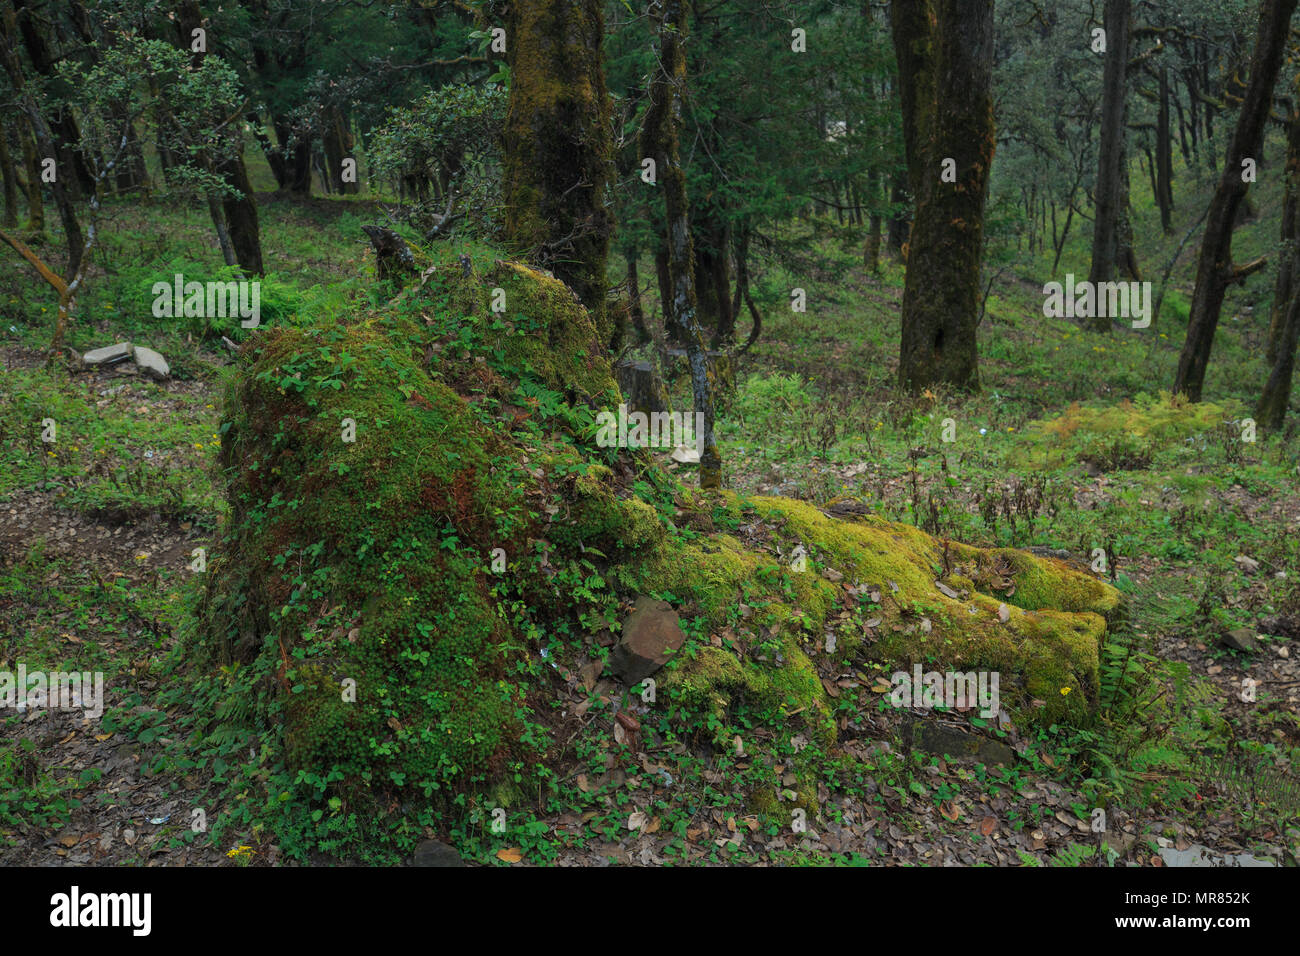 Rocks covered with algae and moss - photographed at Jalori Pass (Himachal Pradesh, India) - Stock Image